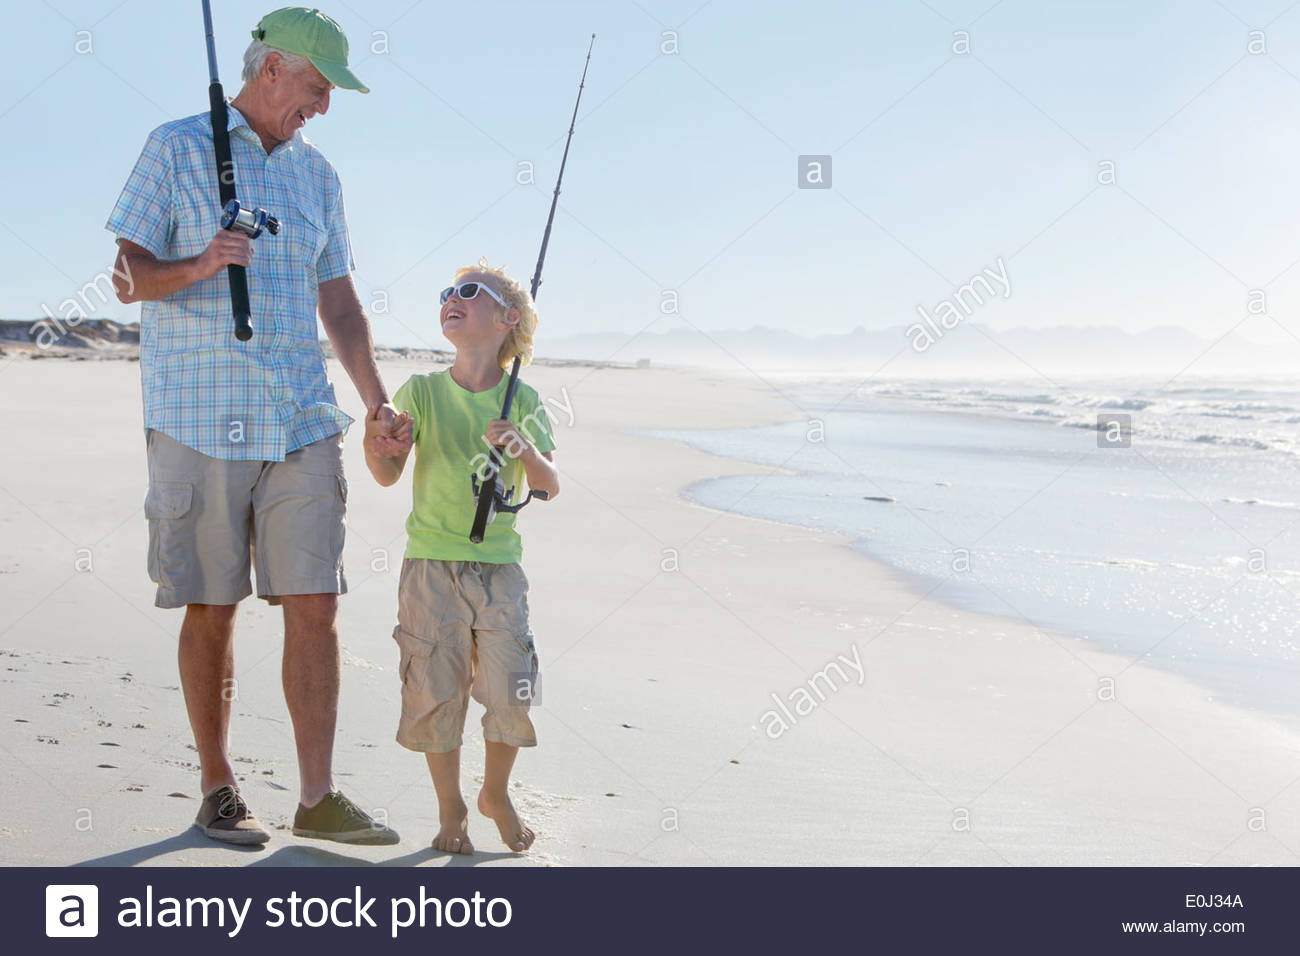 Grandfather and grandson with fishing rods on sunny beach - Stock Image